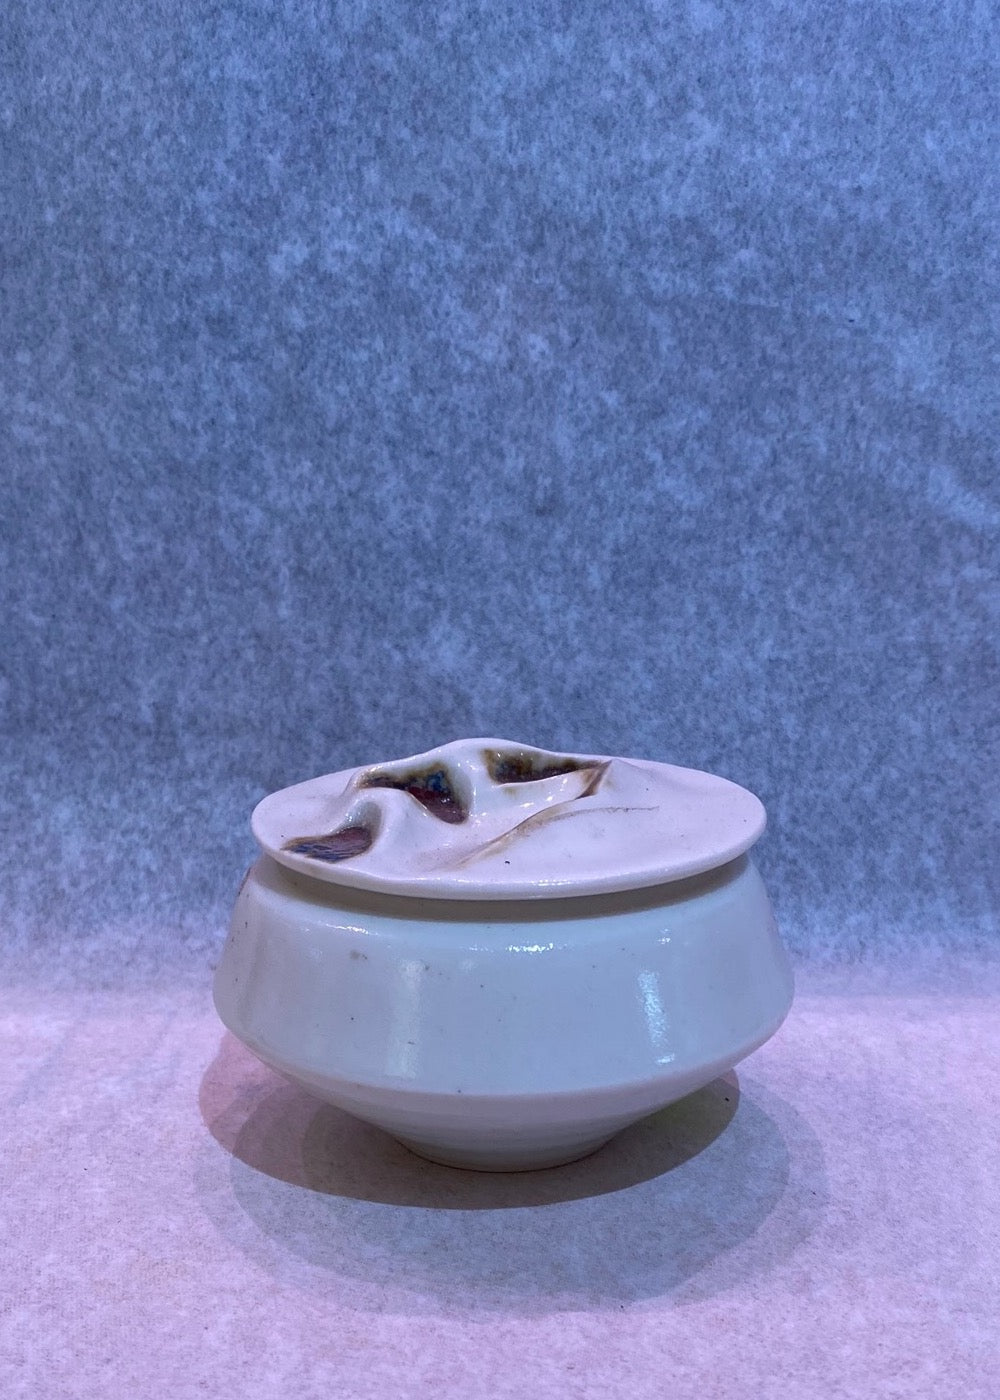 STUDIO ART VASE WITH LID